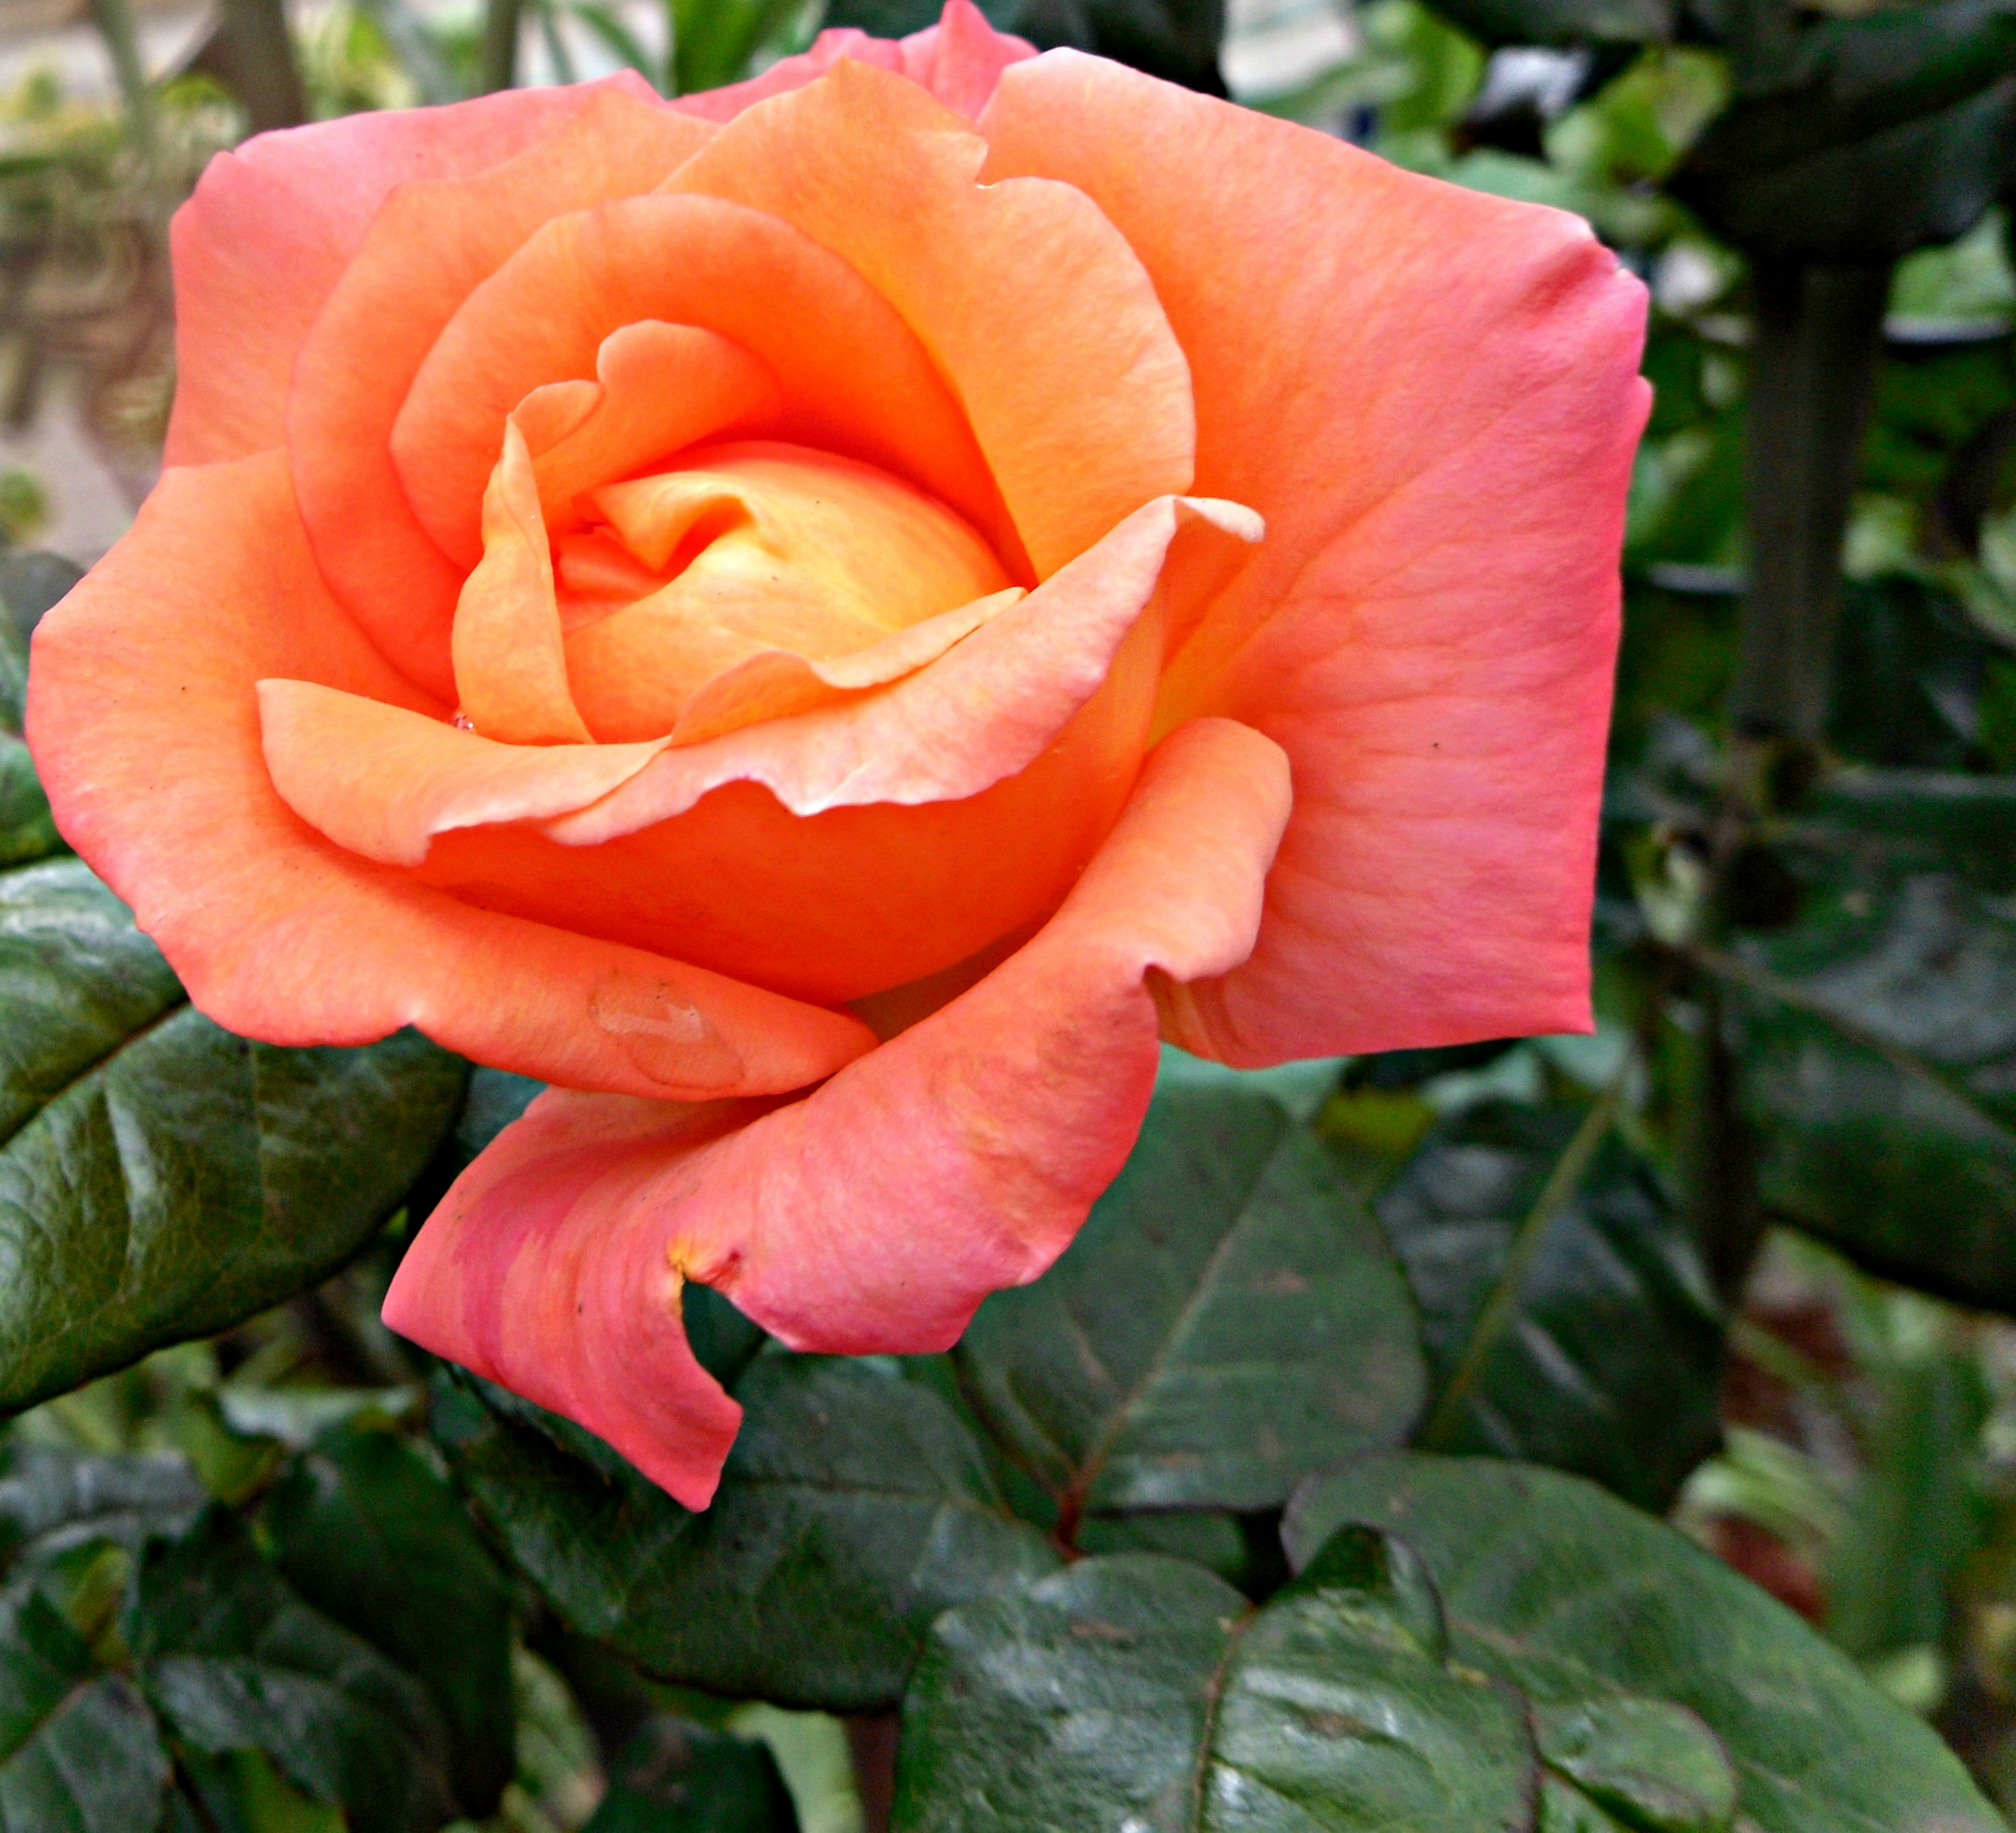 Ask An Aromatherapist: Rose Essential Oil Safety